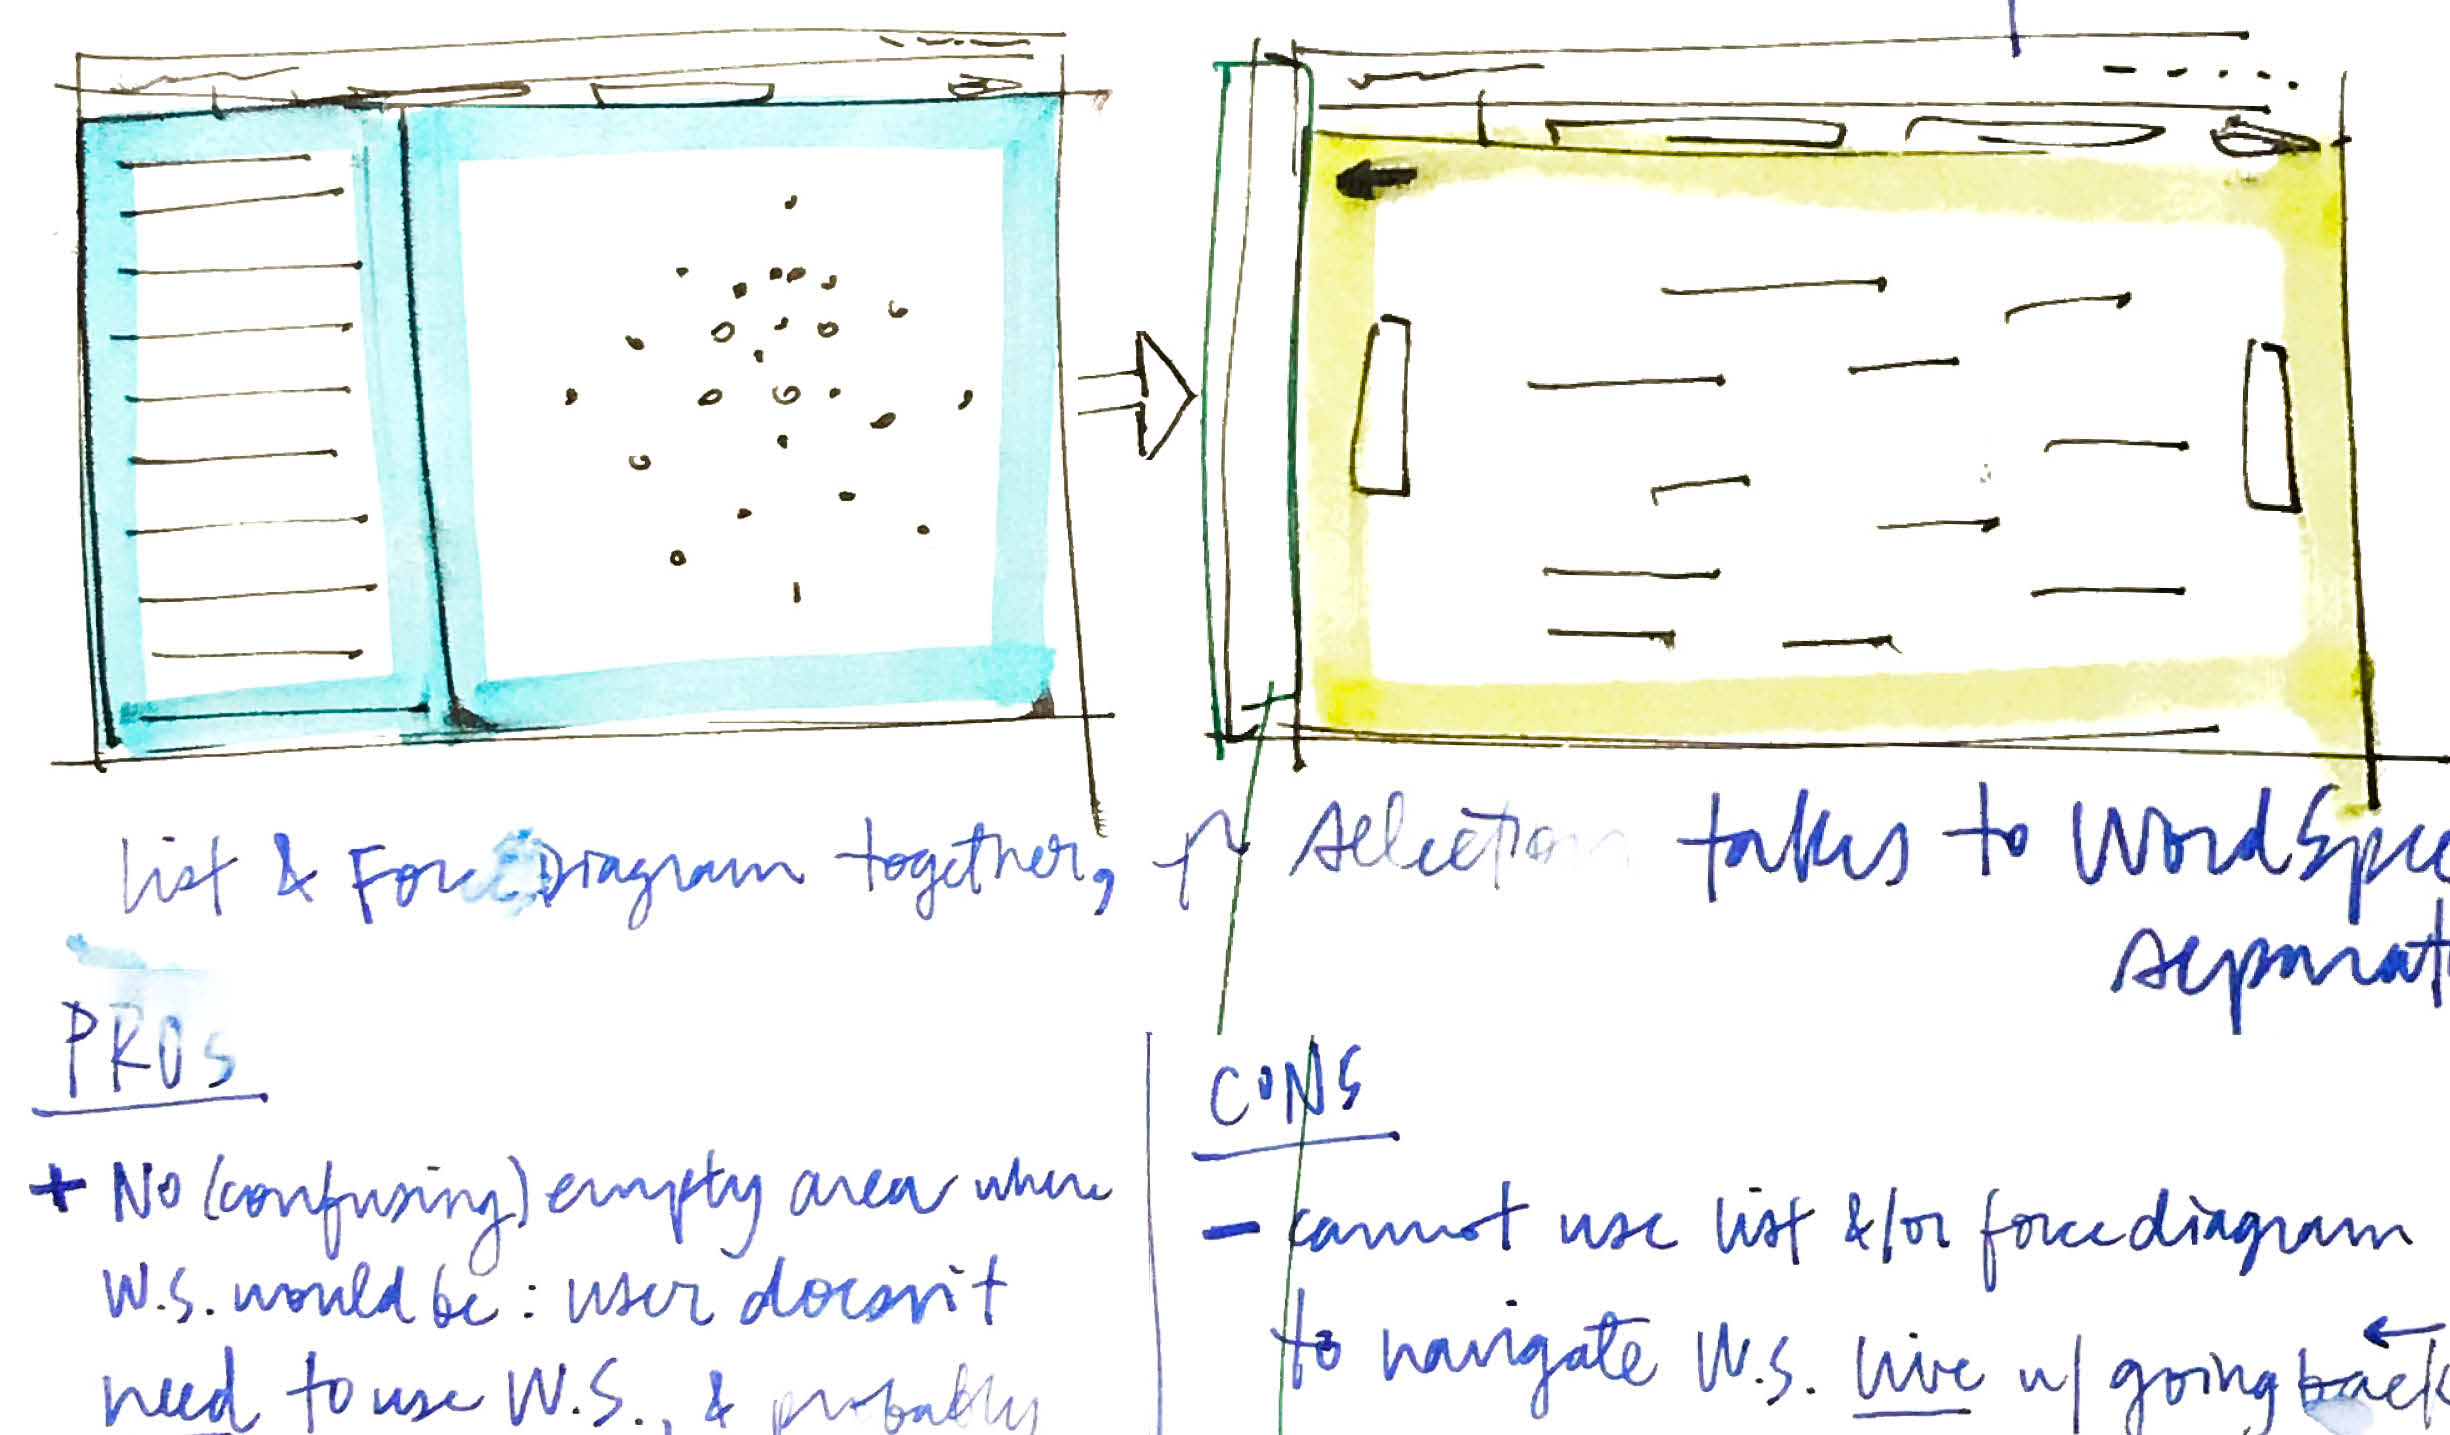 Two screen sketches: one of the list and force diagram together, and one of the word spectrum on its own.